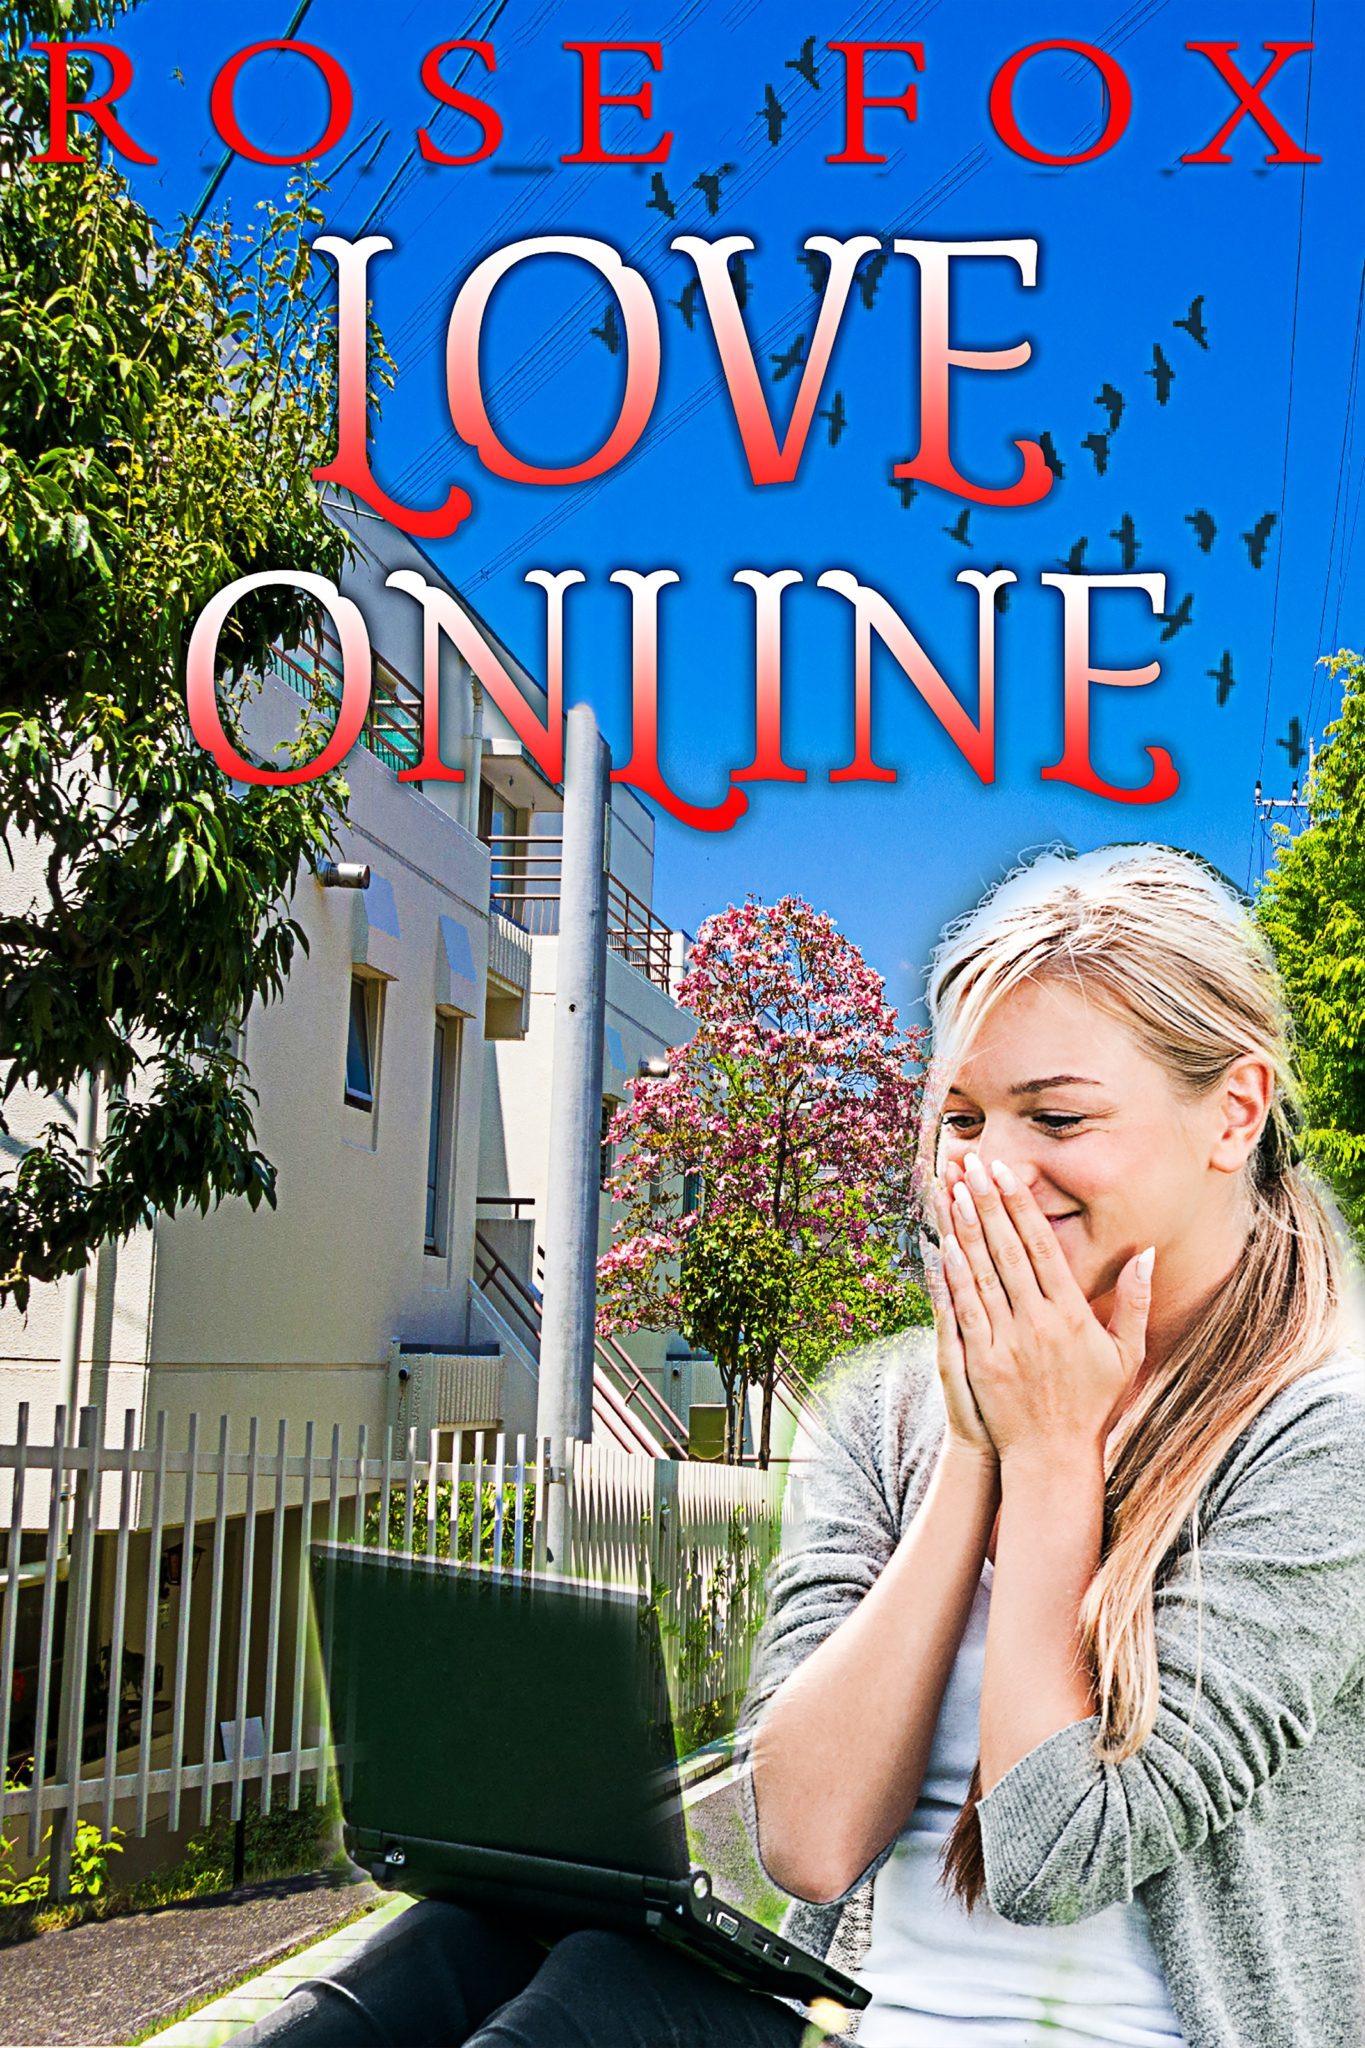 Love Online by Rose Fox